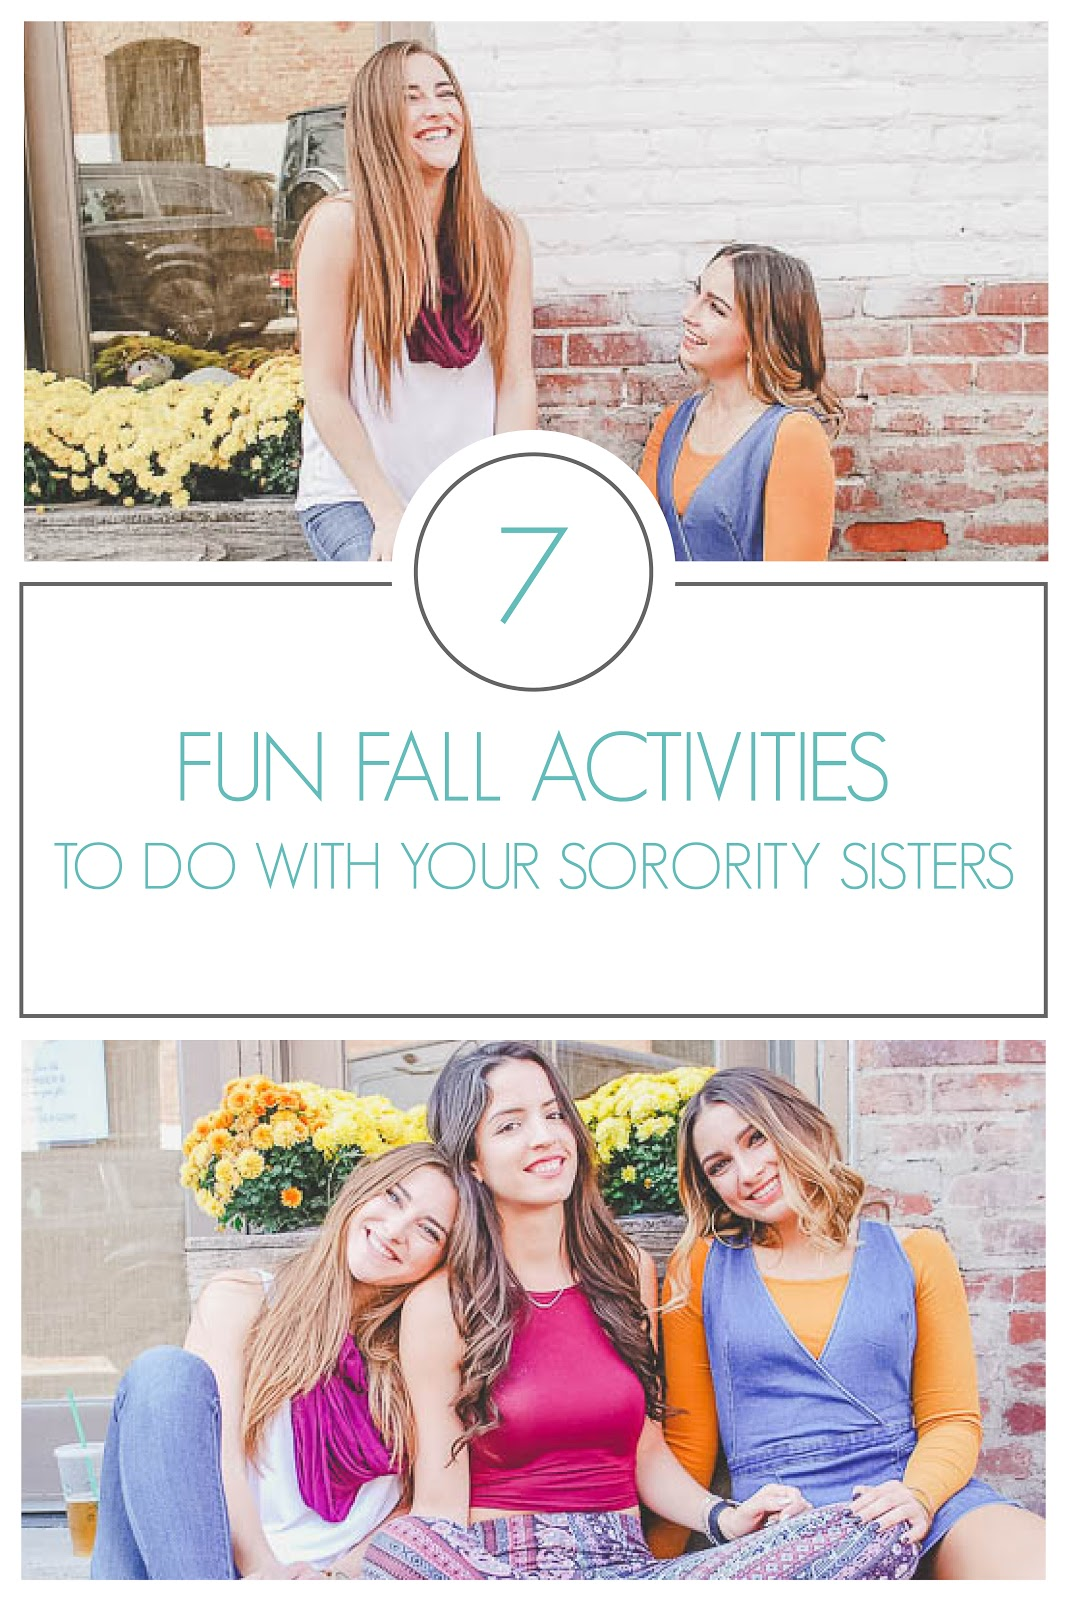 Fun Fall Activities Feature Image